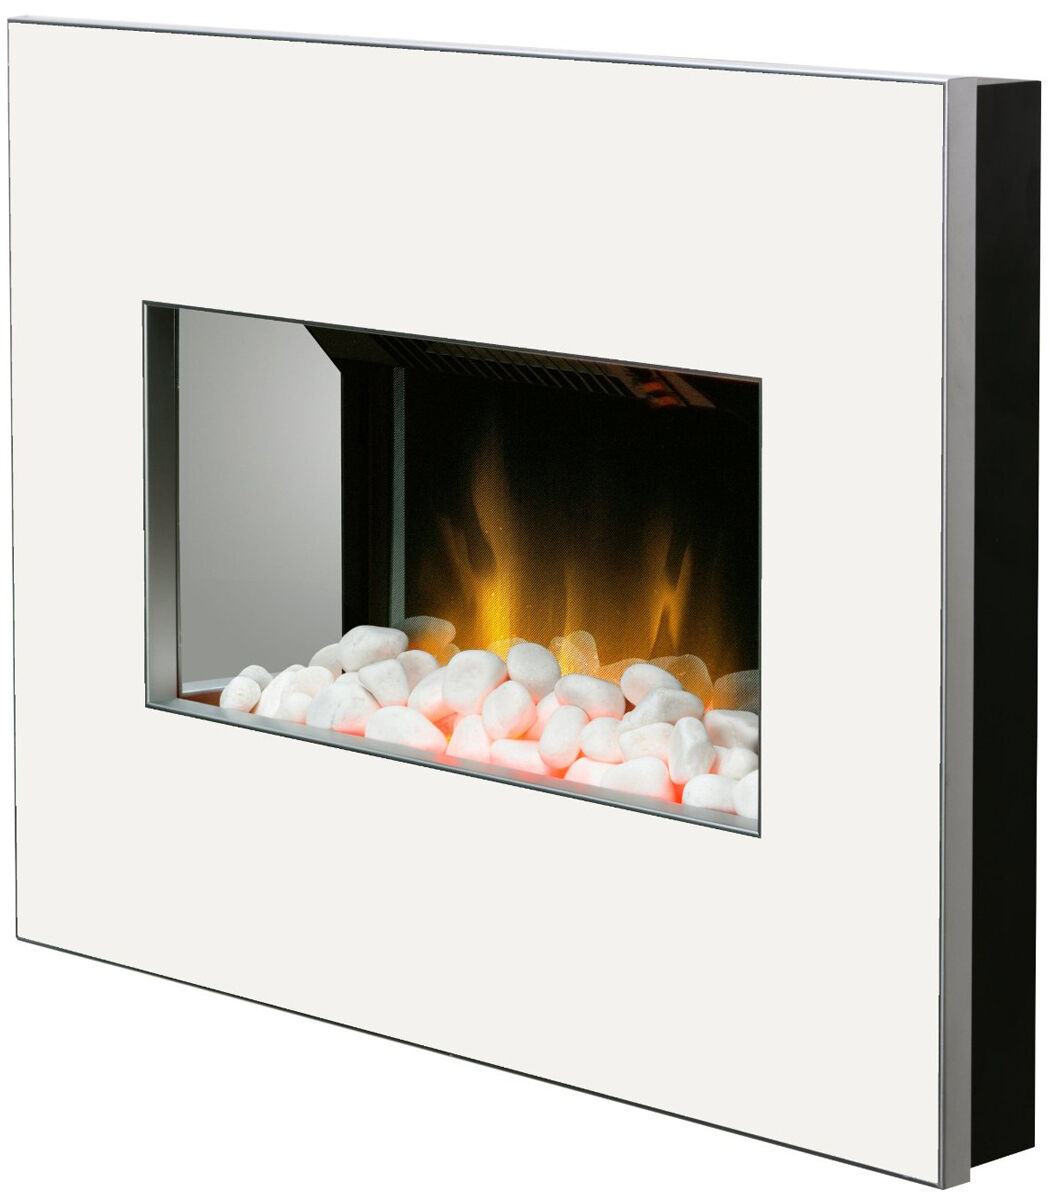 New Dimplex Clovaw Wall Mounted Electric Fire Heater Aud Picclick Au